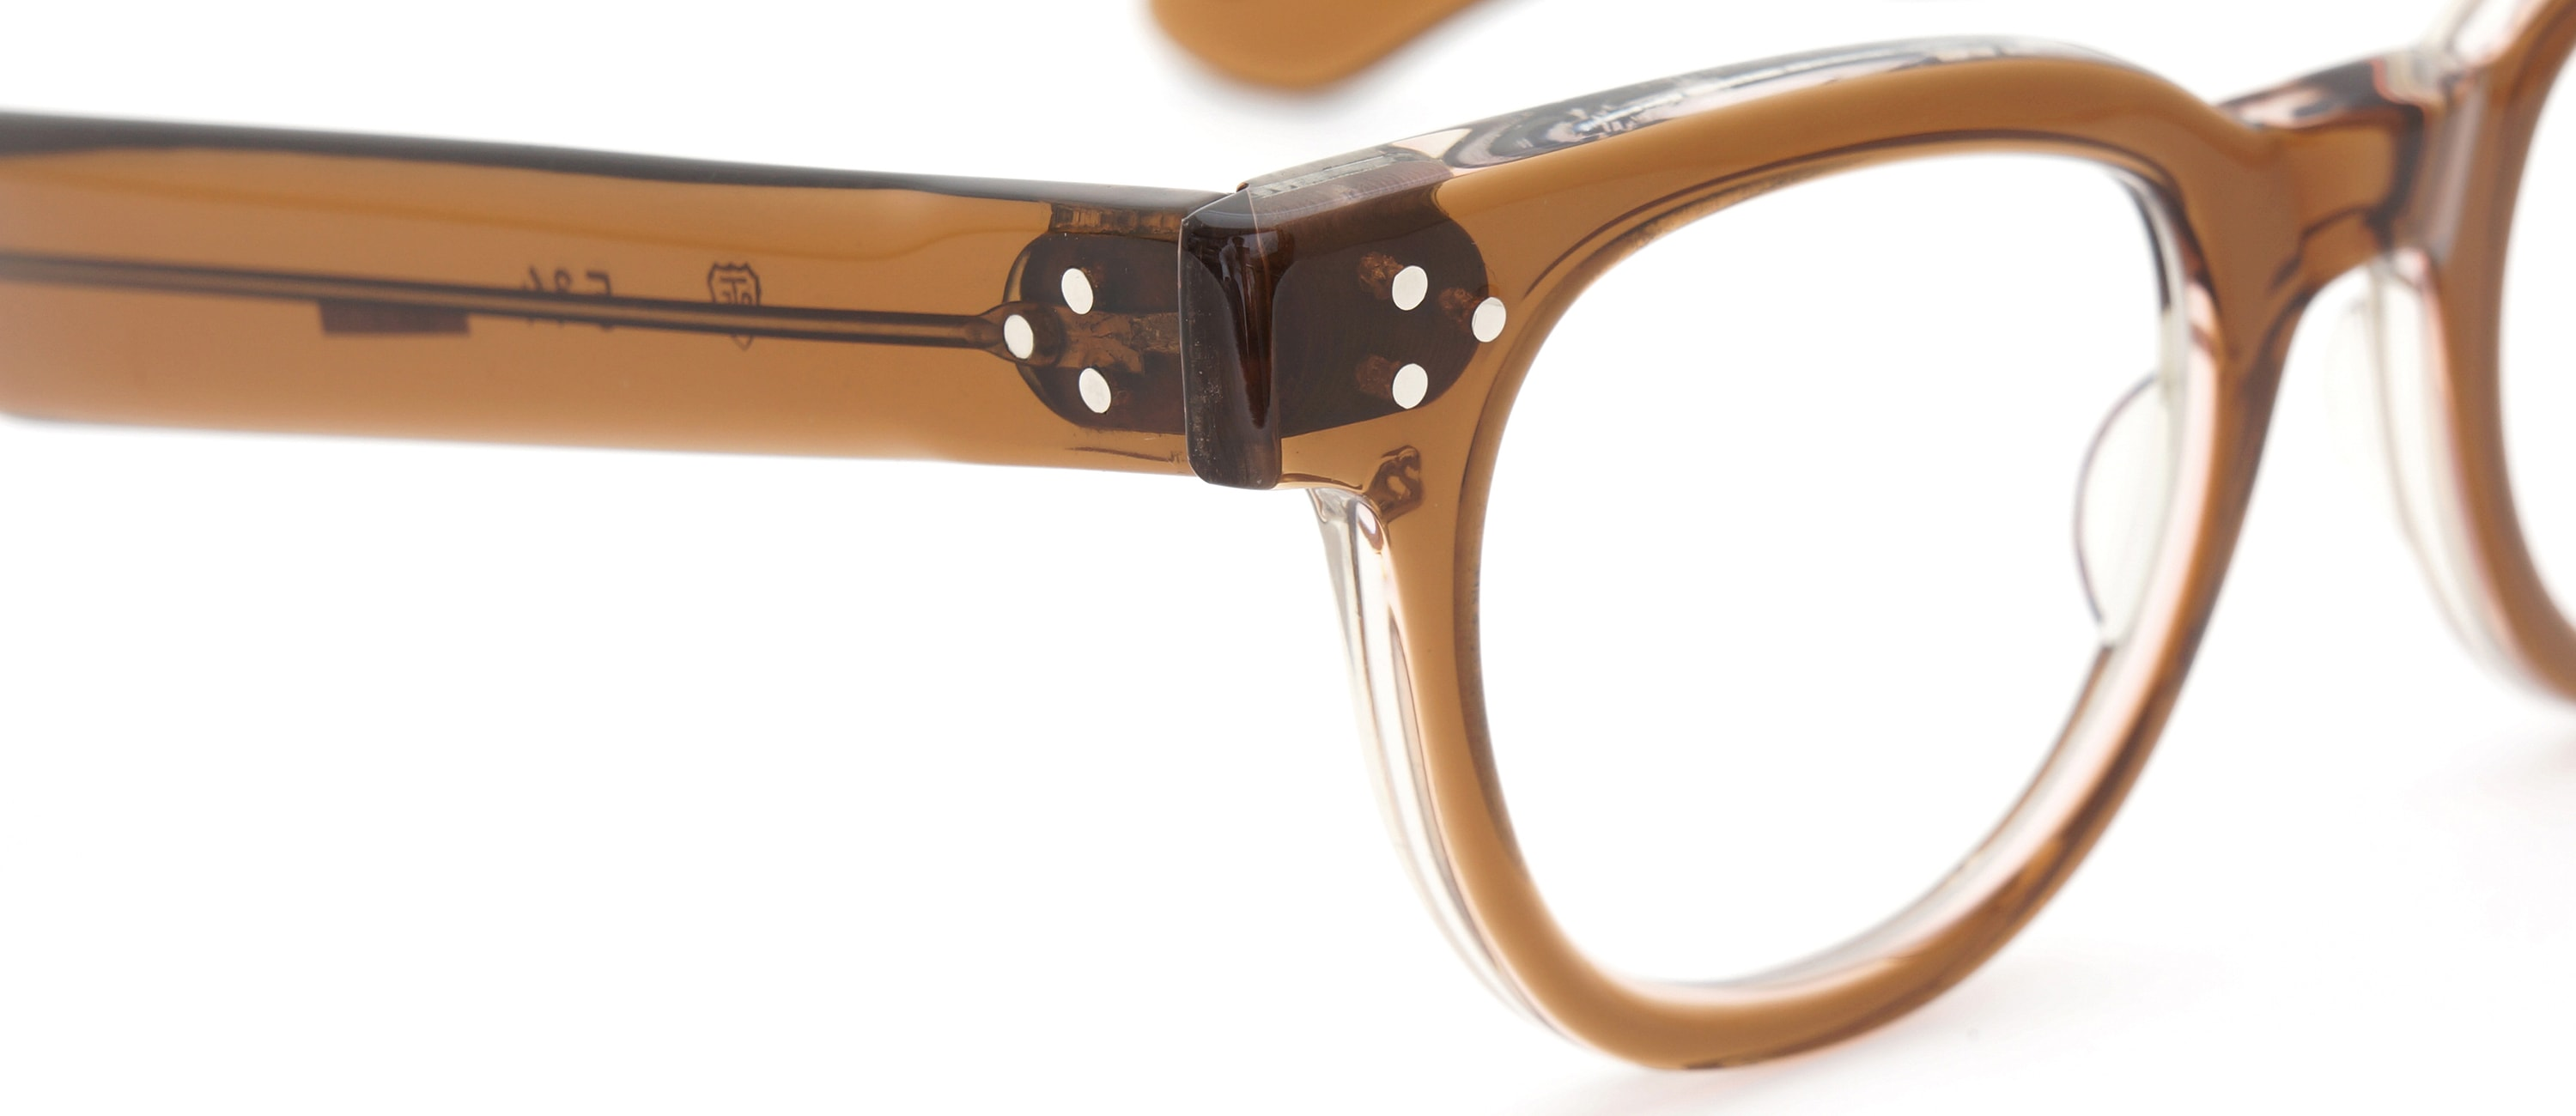 The Spectacle メガネ 1950s-70s TART OPTICAL FDR (FRAME USA) BROWN 44-22 イメージ7